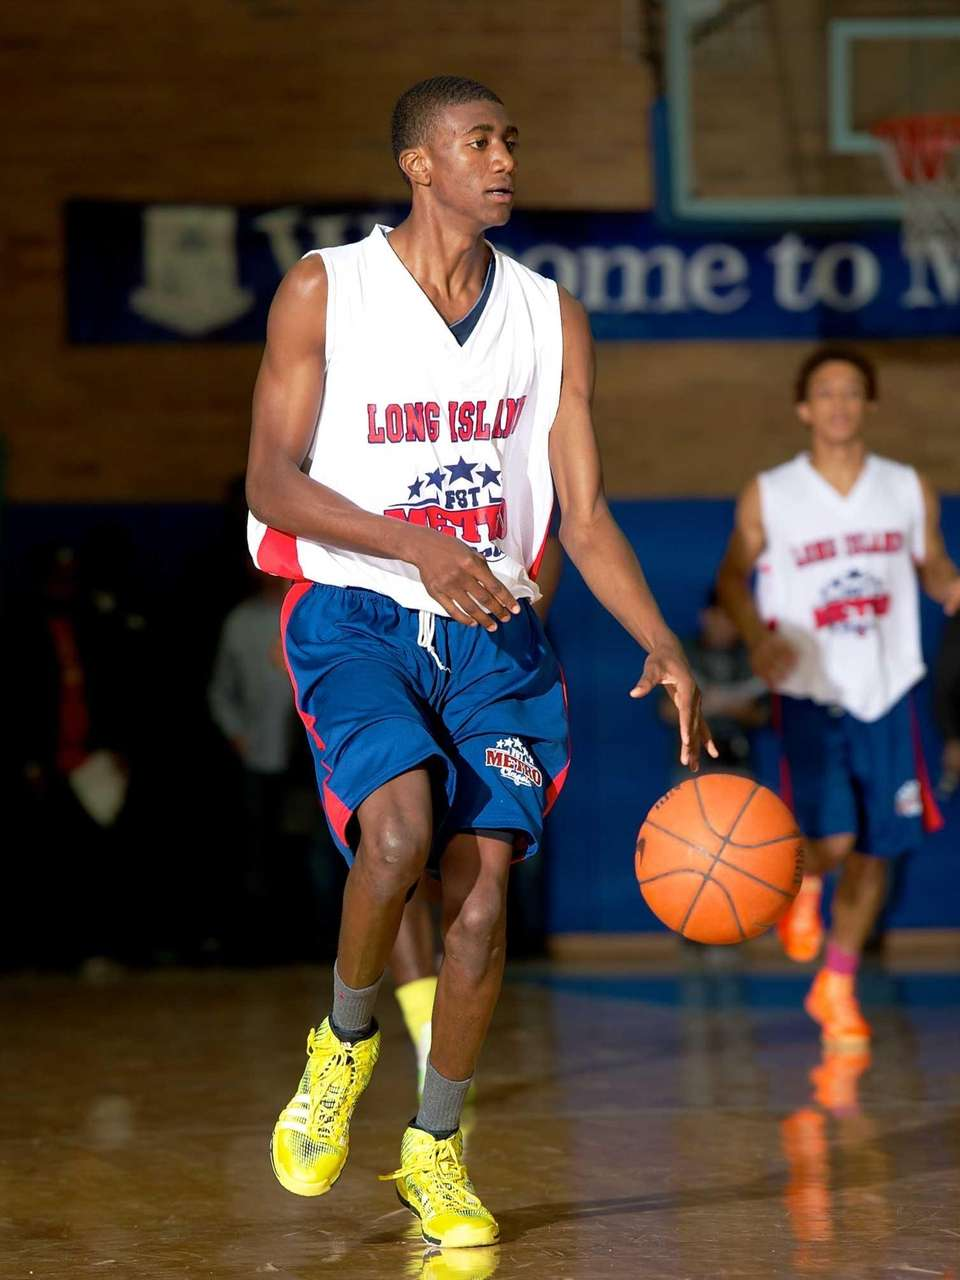 Travis Dickerson, a Long Island All-Star guard from